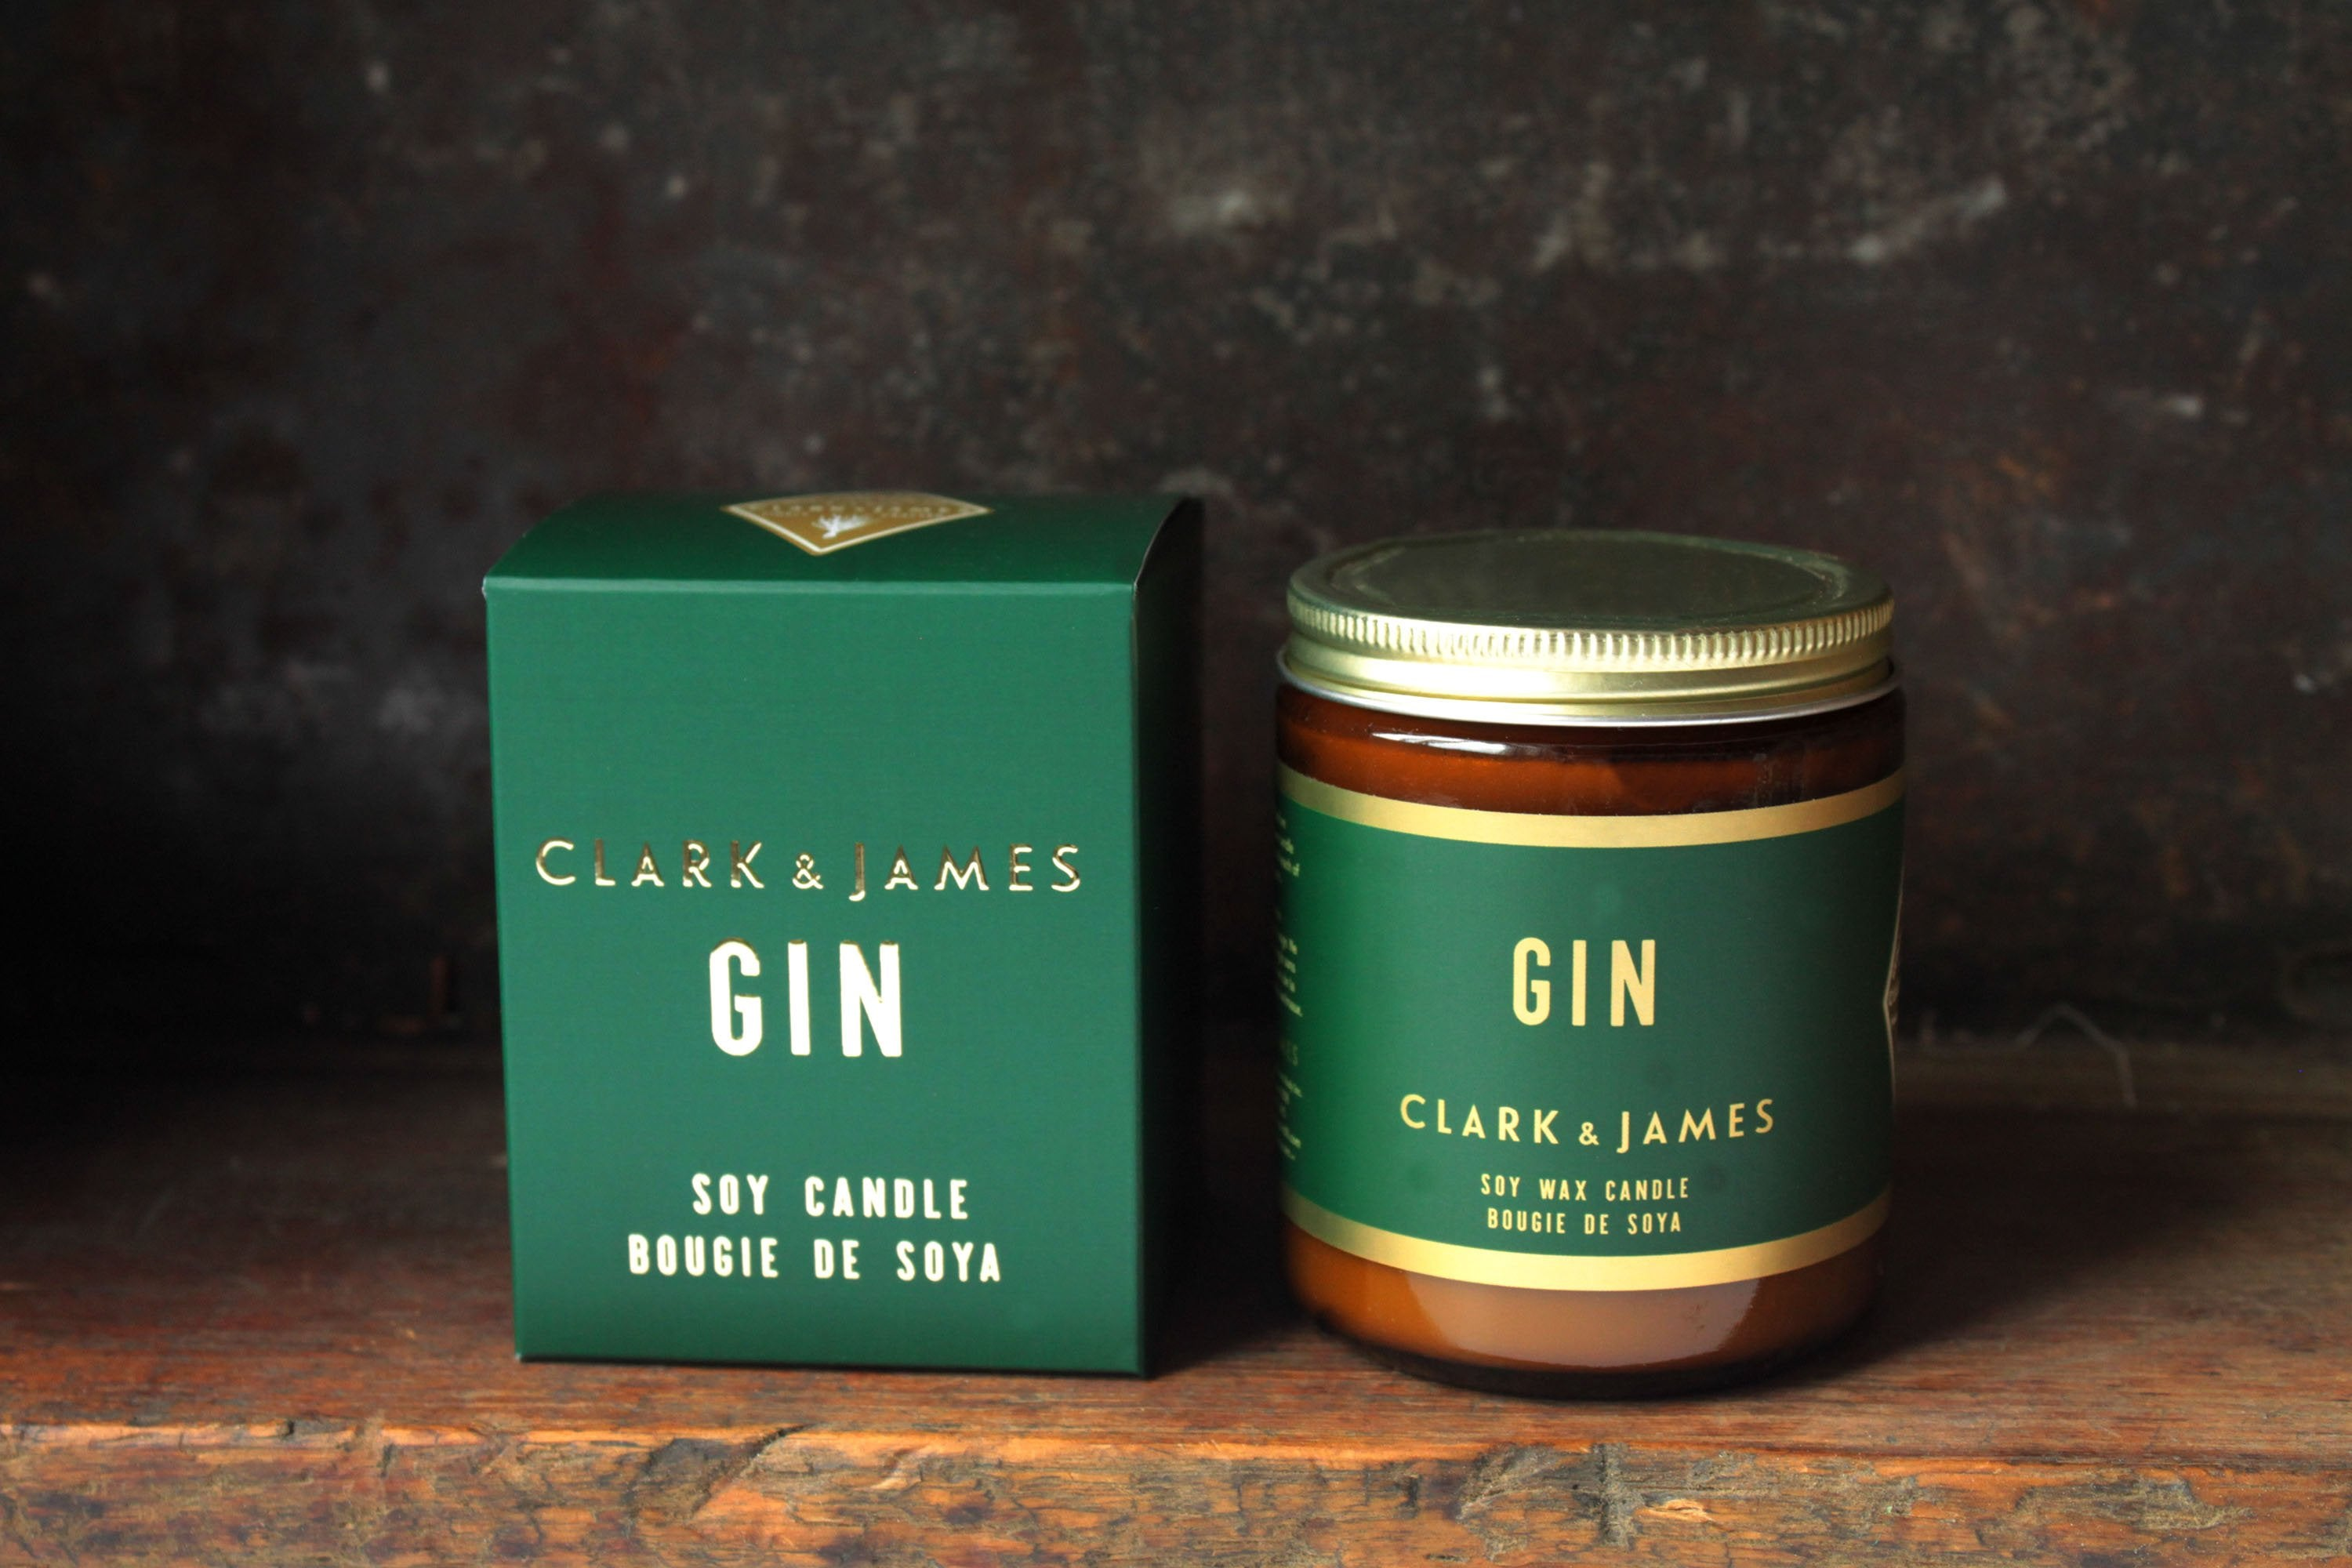 Clark & James Gin candle